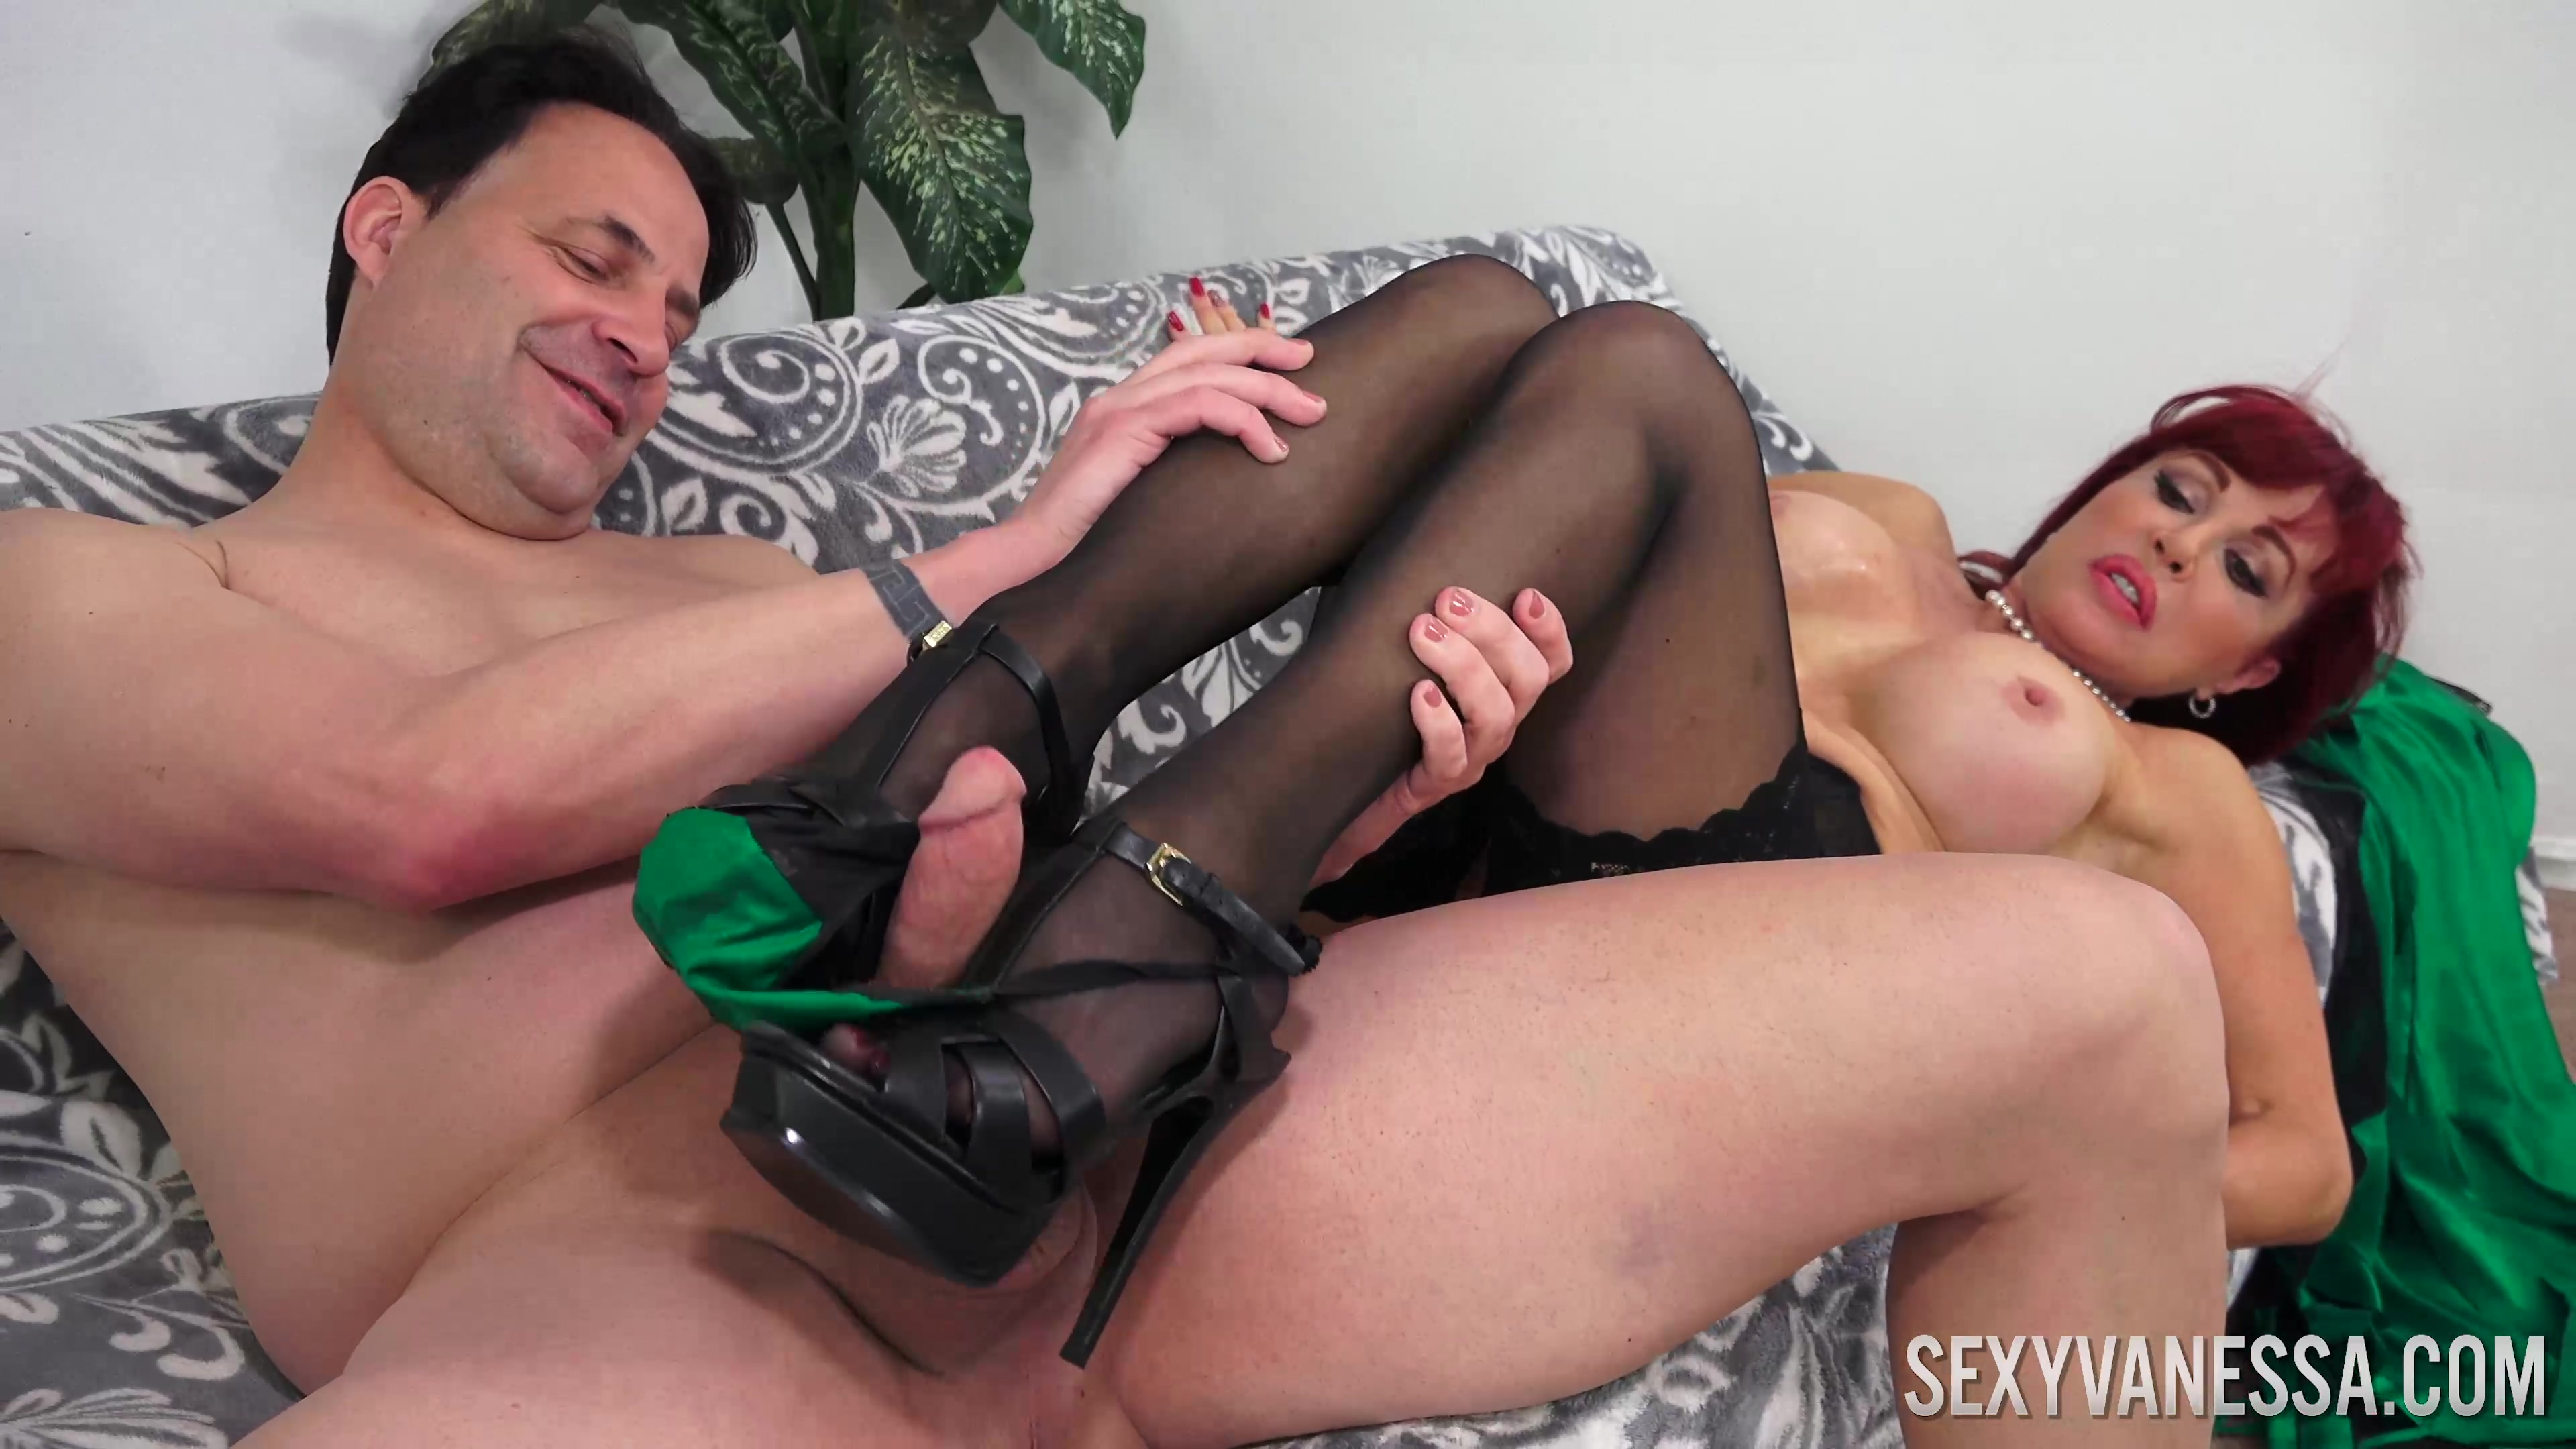 Experienced Milf Sexy Vanessa Knows How To Take Care Of A Long Dick Hell Moms